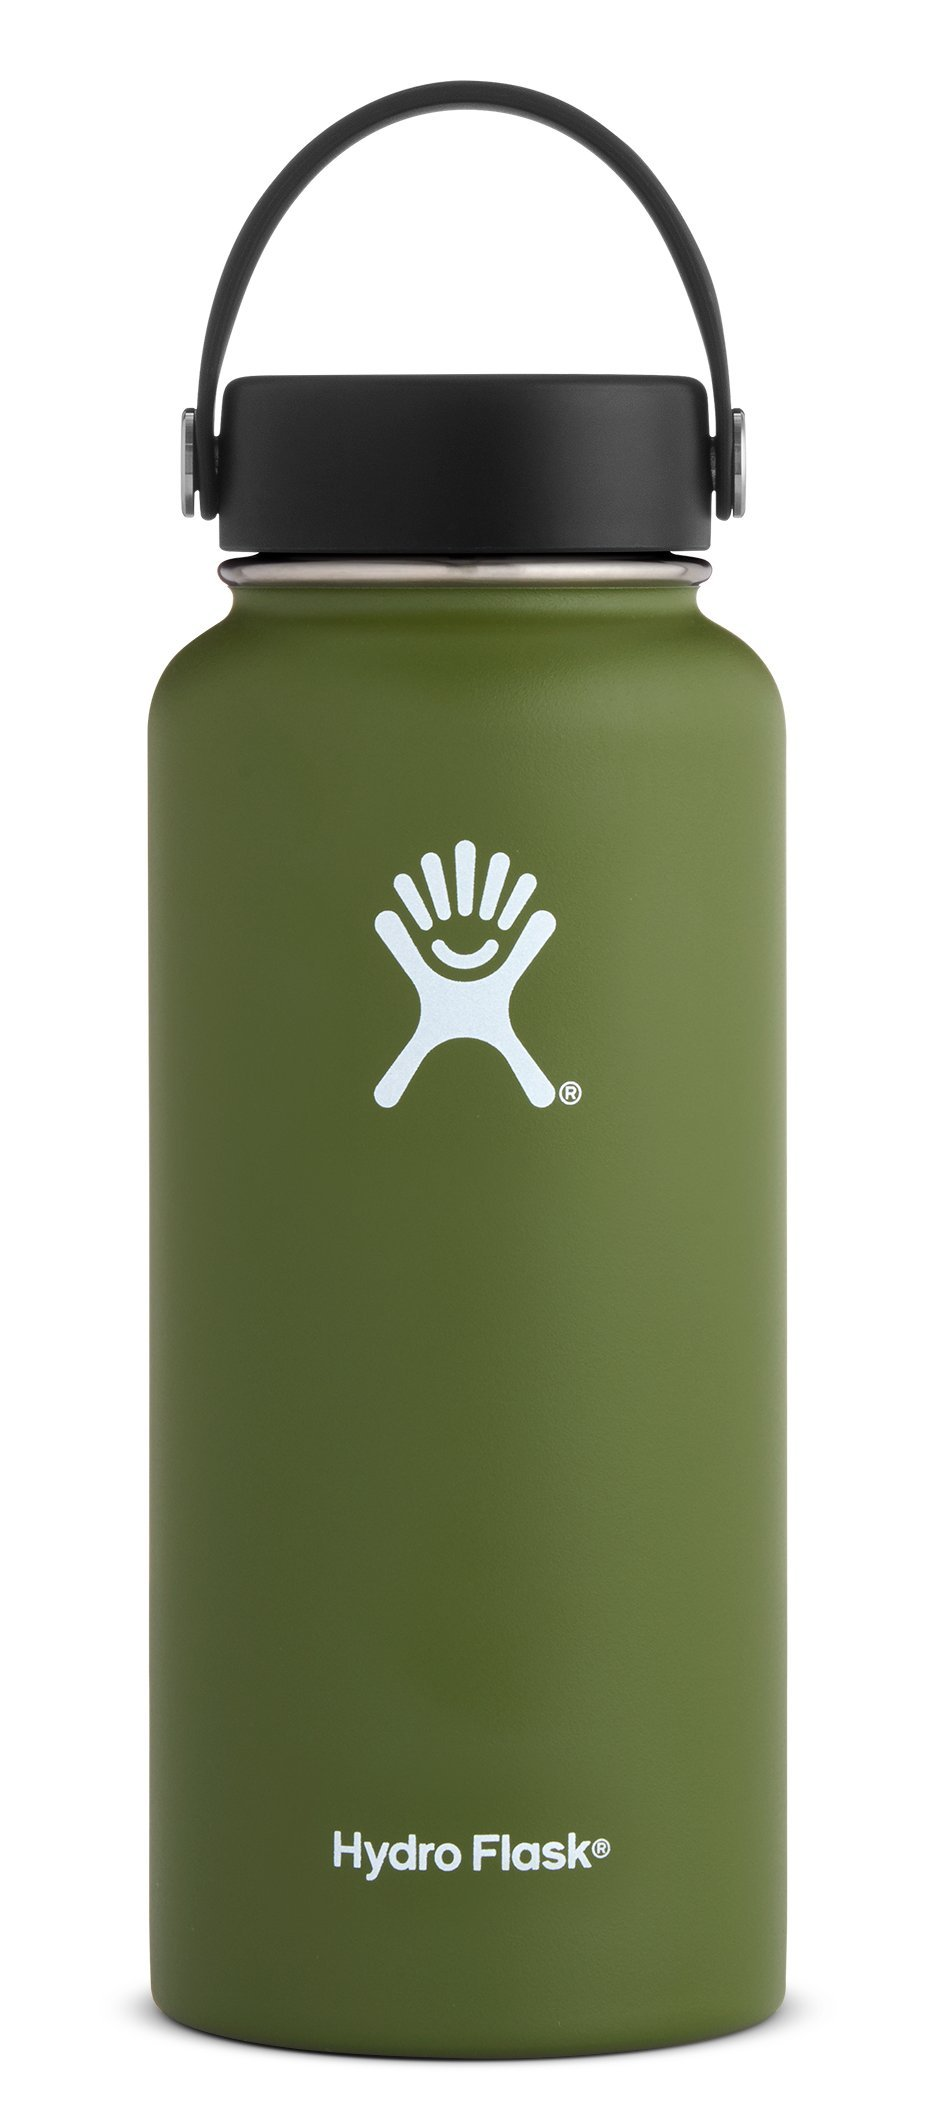 Hydro Flask 32 oz Double Wall Vacuum Insulated Stainless Steel Leak Proof Sports Water Bottle, Wide Mouth with BPA Free Flex Cap, Olive by Hydro Flask